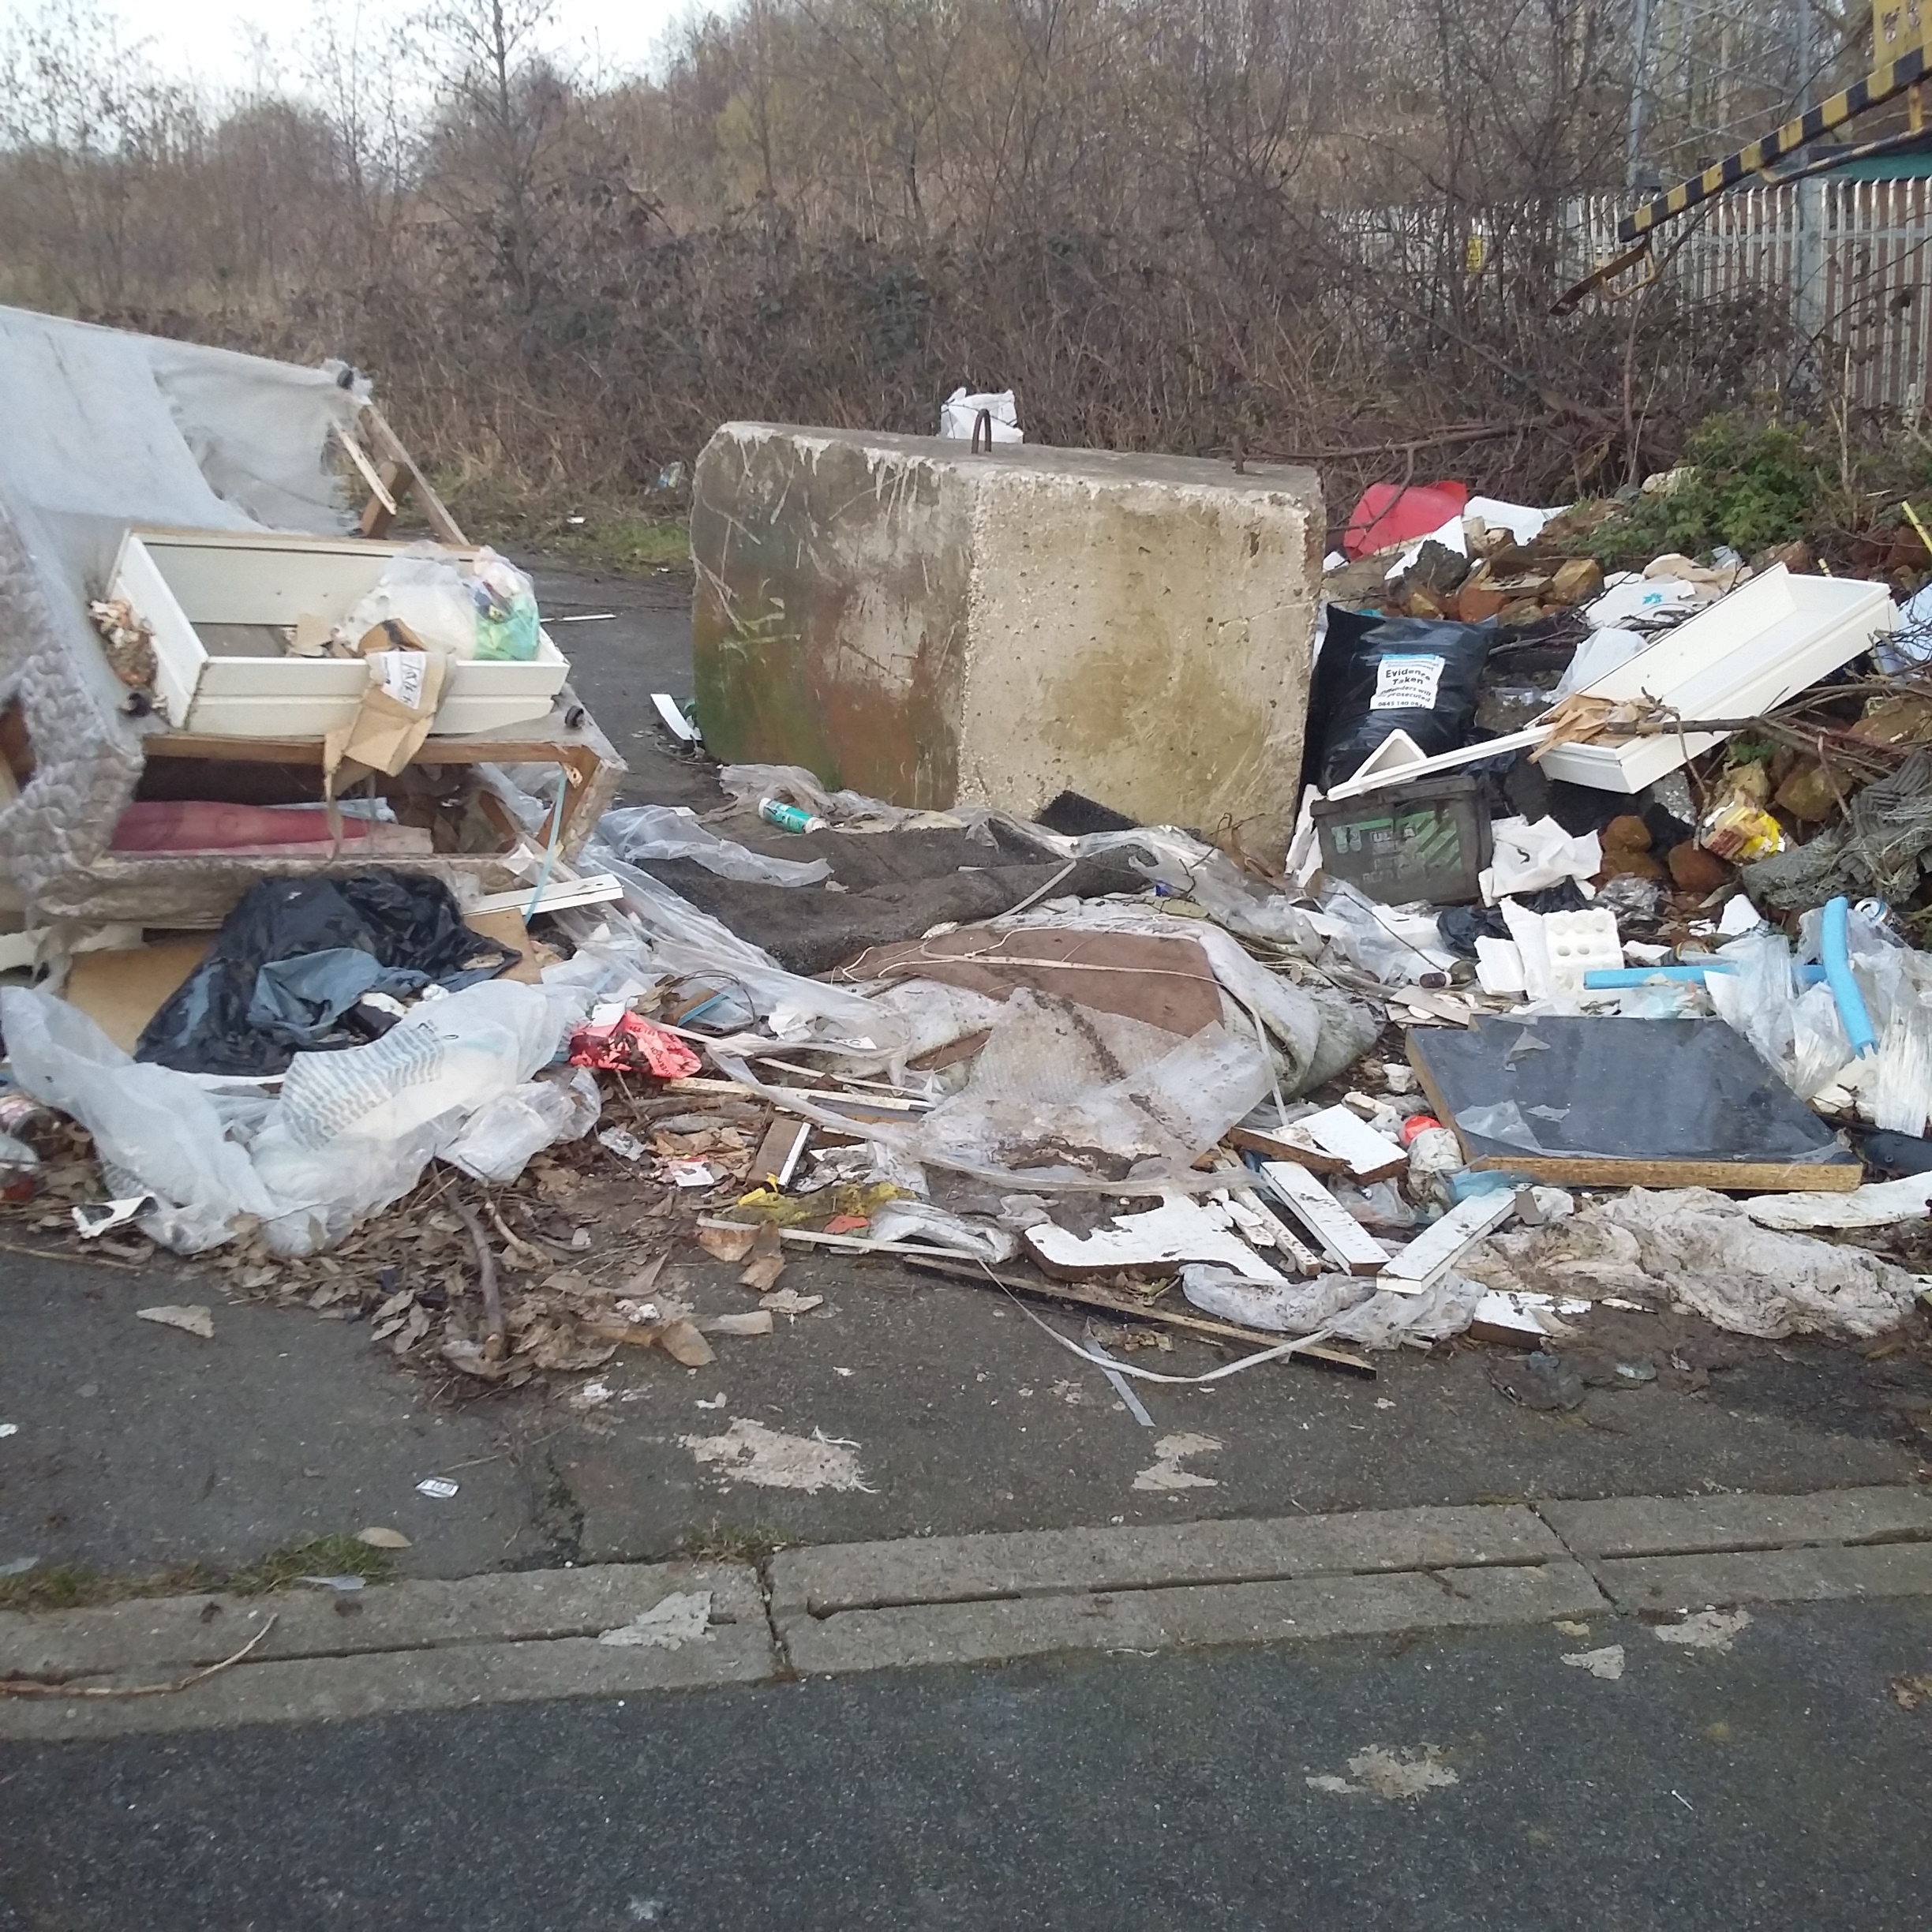 Council acts to clean up mess left by fly-tippers